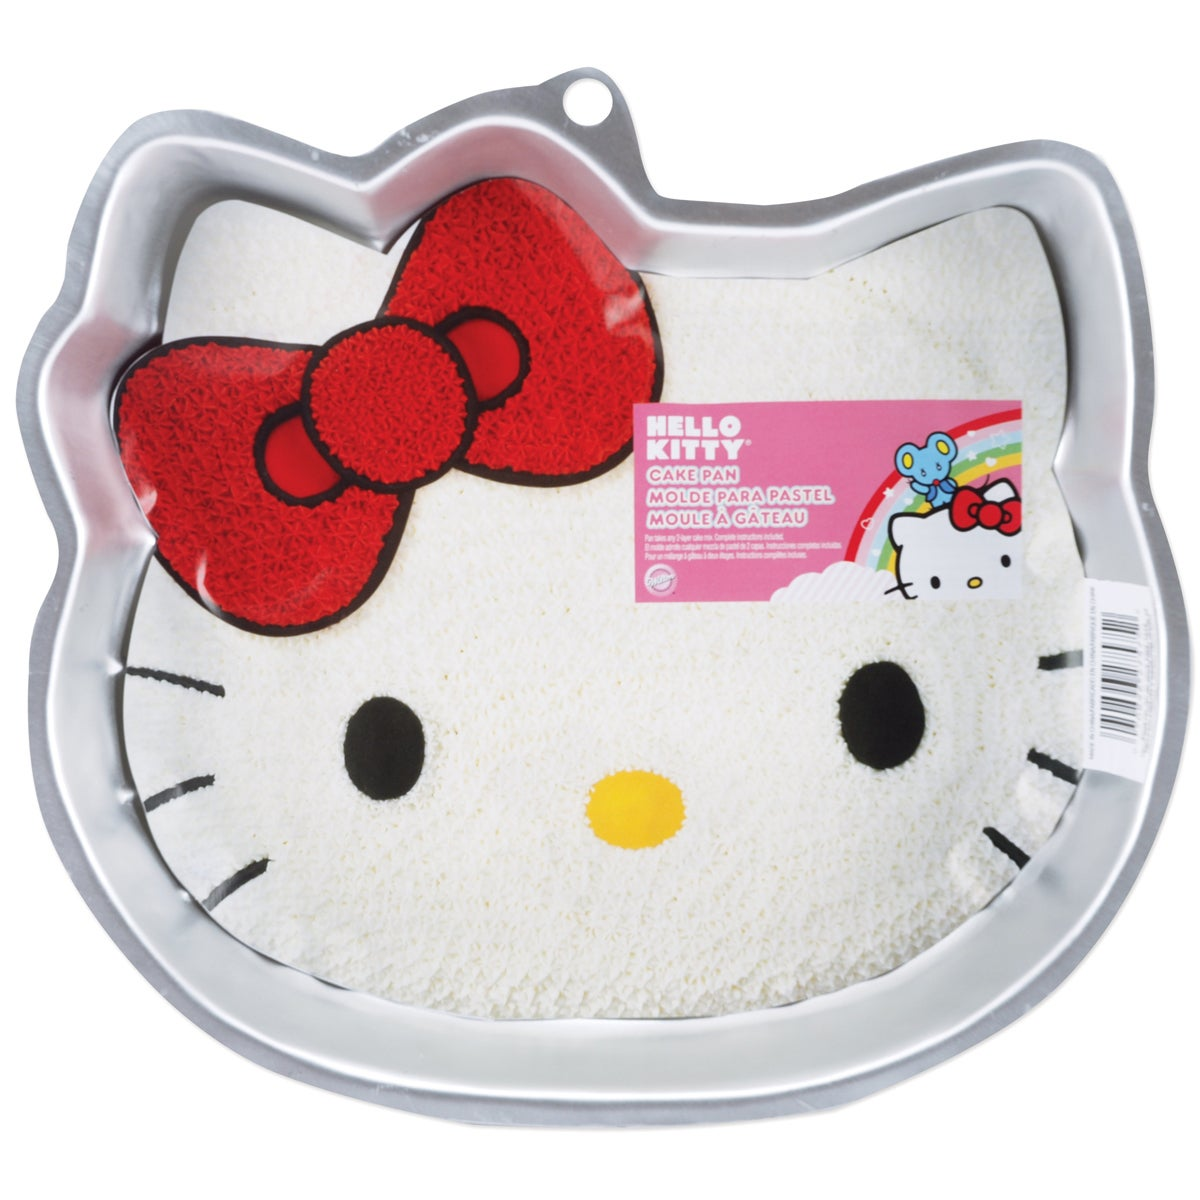 'Hello Kitty' Novelty Cake Pan